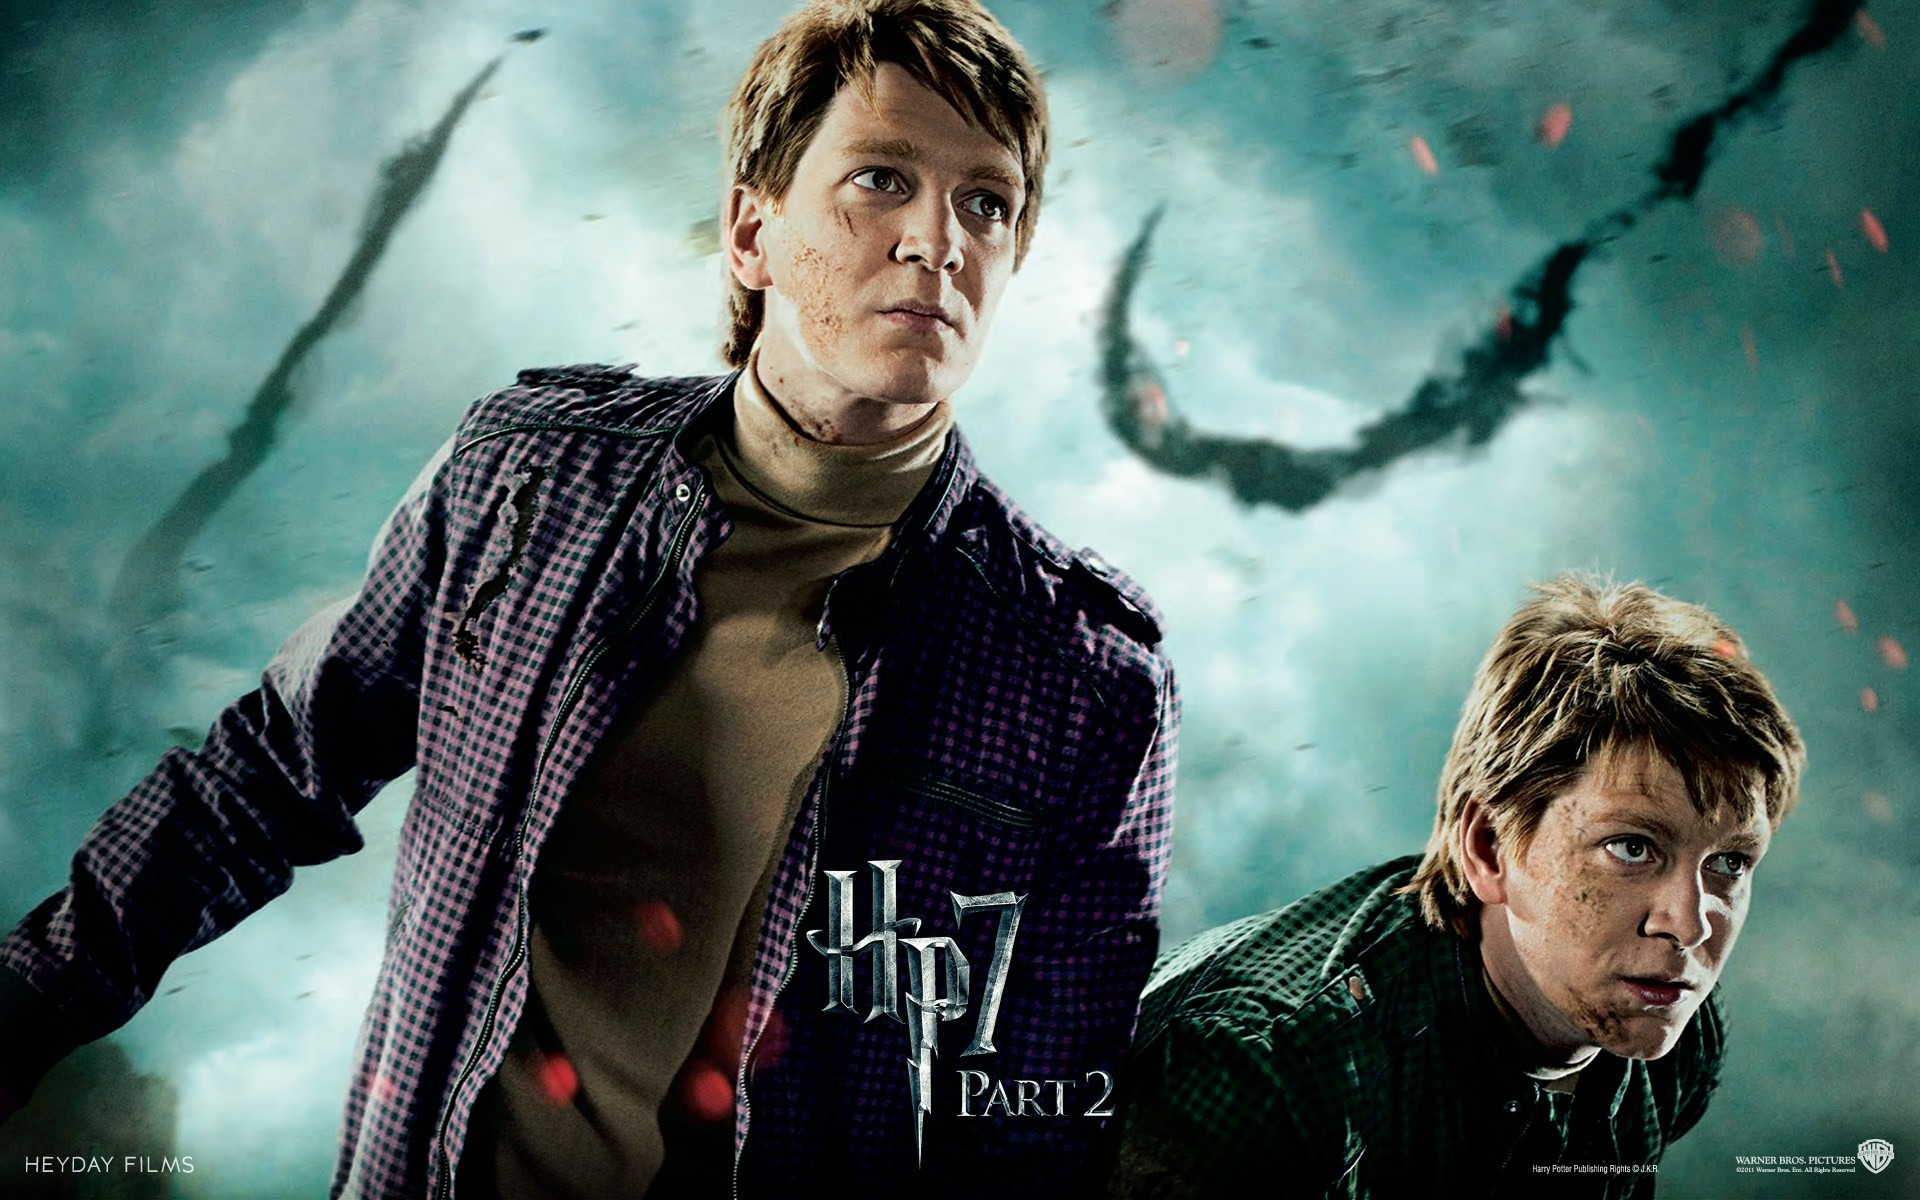 Harry Potter 7 - Weasley twins wallpaper - 1920x1200 wallpaper download